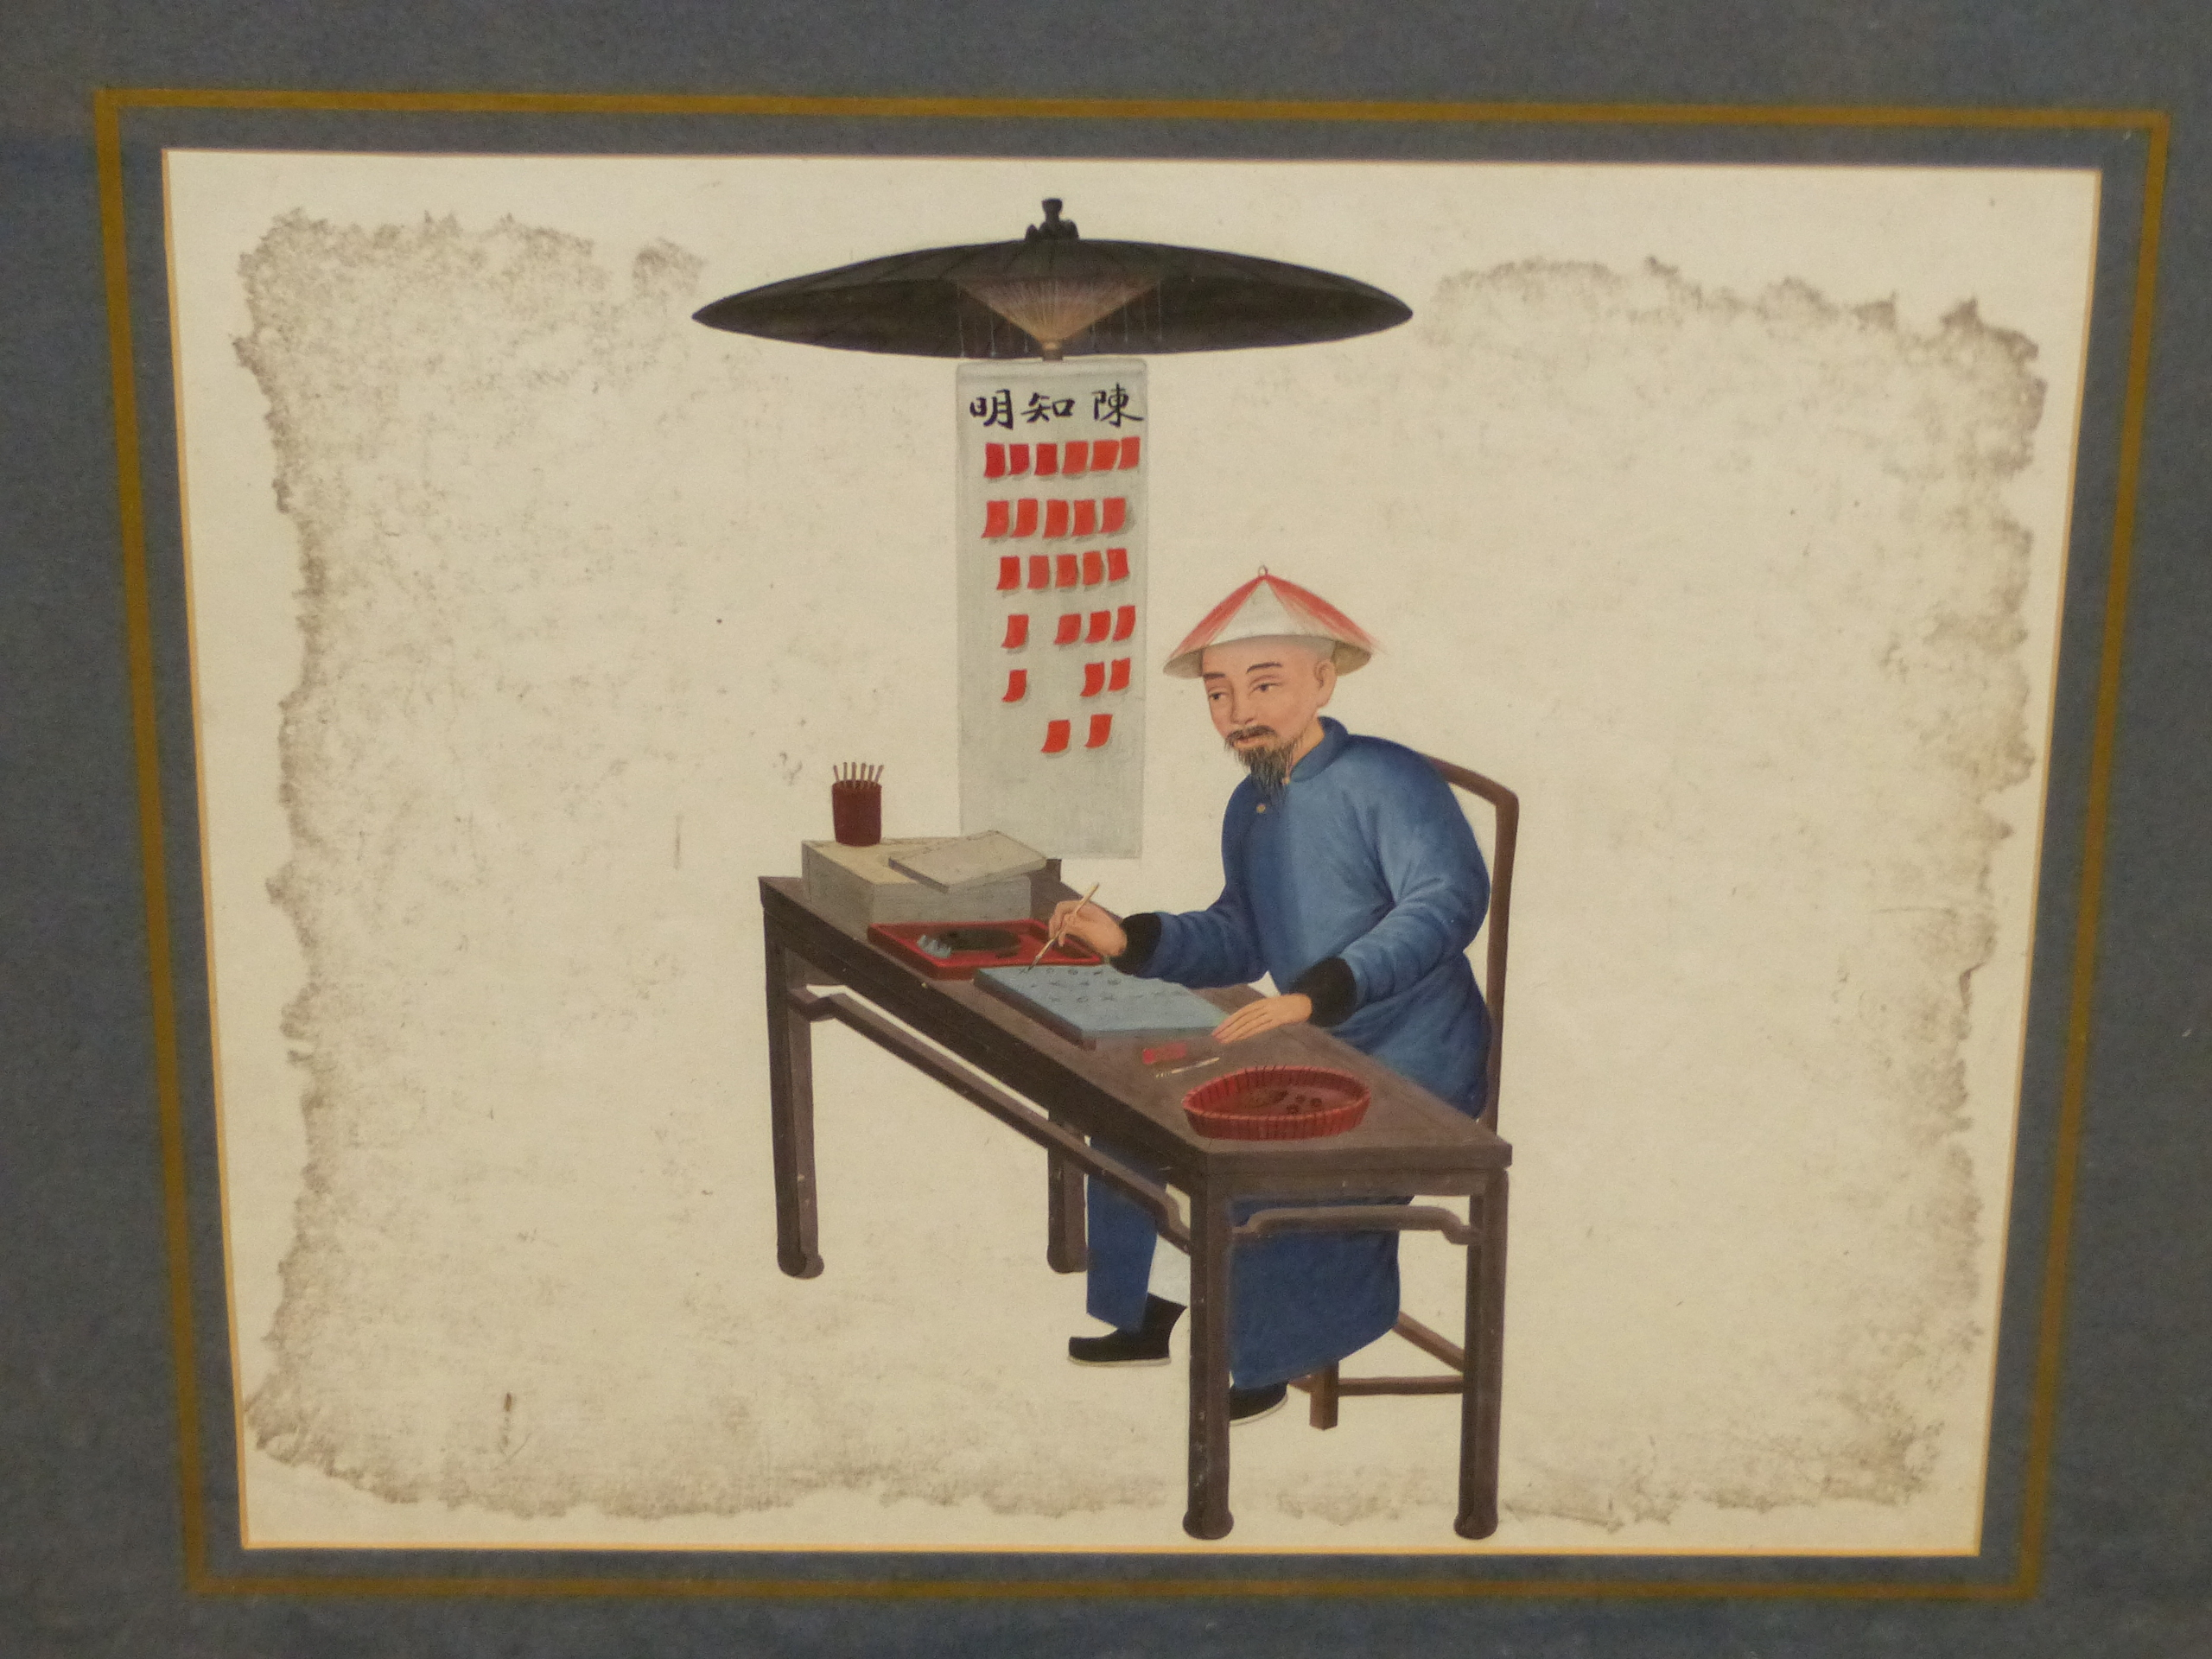 TWO GILT FRAMED CHINESE WATERCOLOURS, ONE OF A MAN SEATED AT A TABLE WRITING, THE OTHER OF A MAN - Image 3 of 5